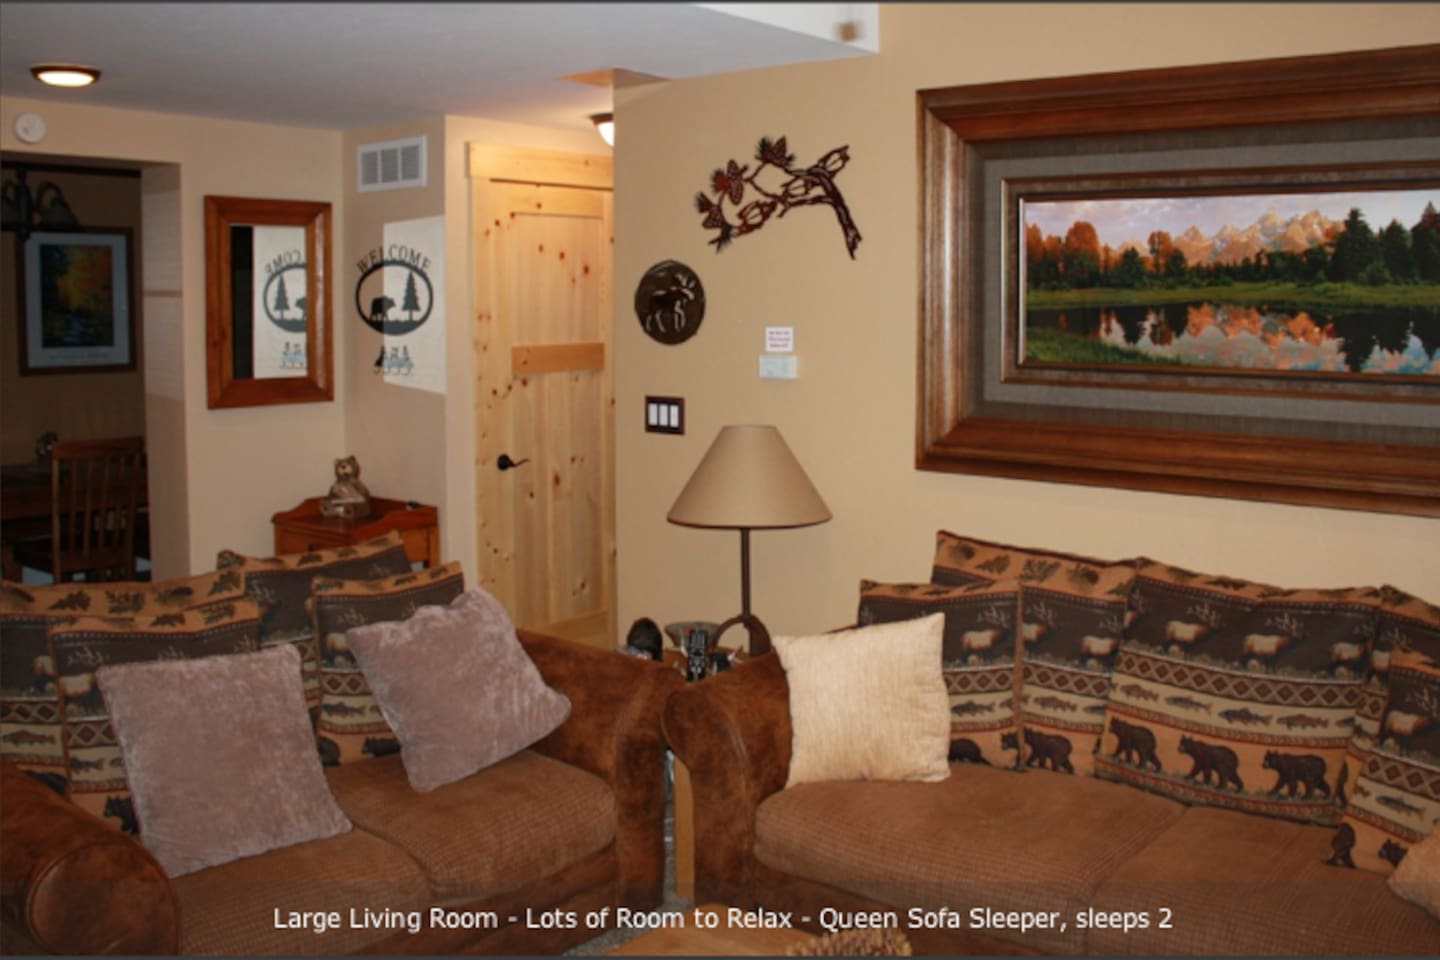 The Lift Condos - One Bedroom Walk to Ski Slopes and Downtown Breckenridge!